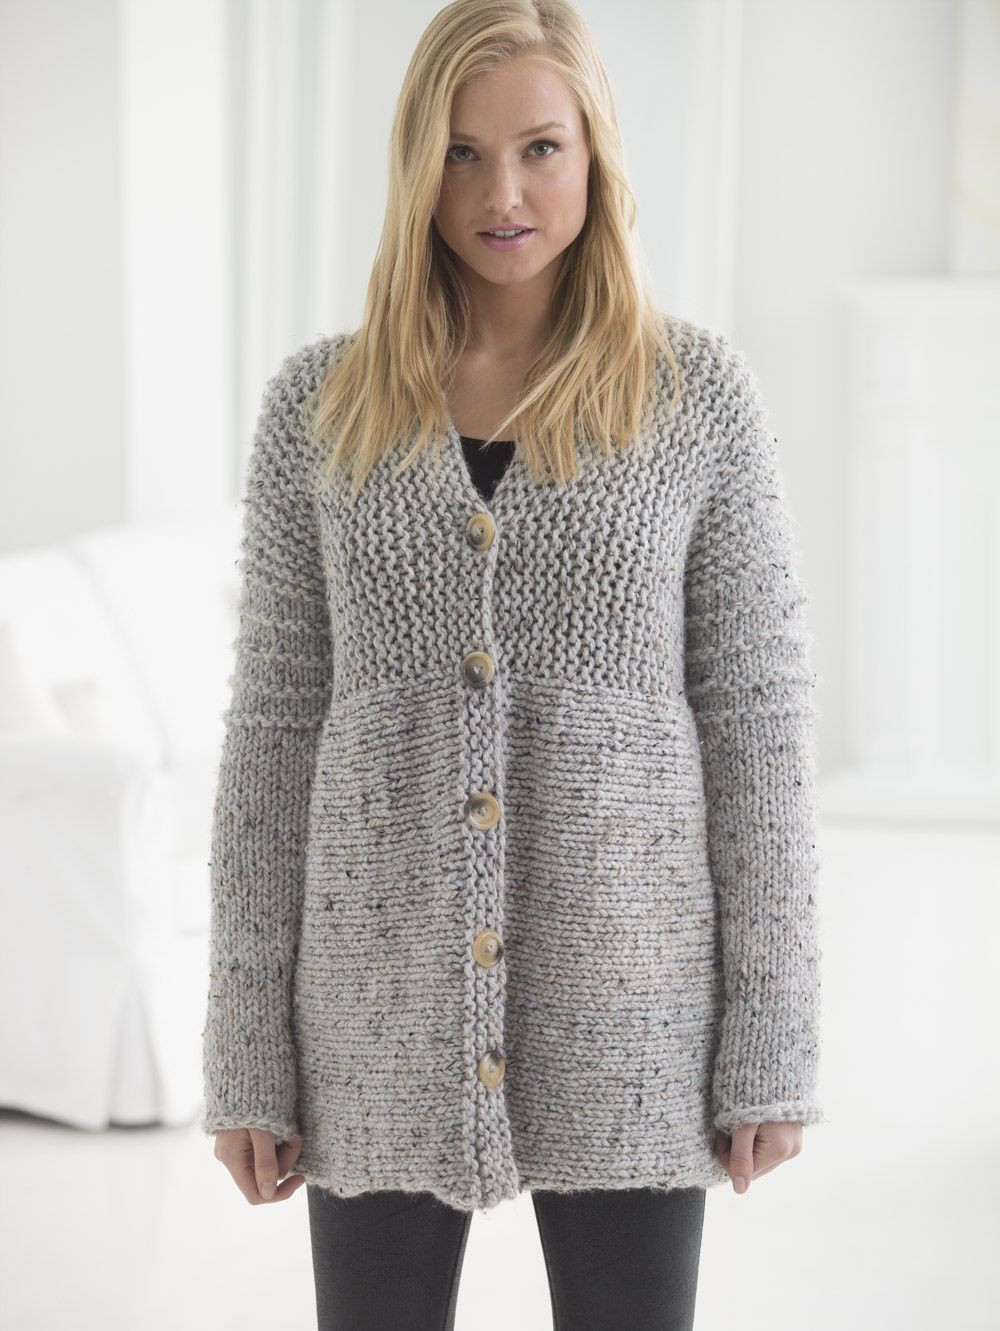 Cardigan Pattern Beautiful Your First Sweater the Reading Room Cardigan Of Superb 46 Images Cardigan Pattern